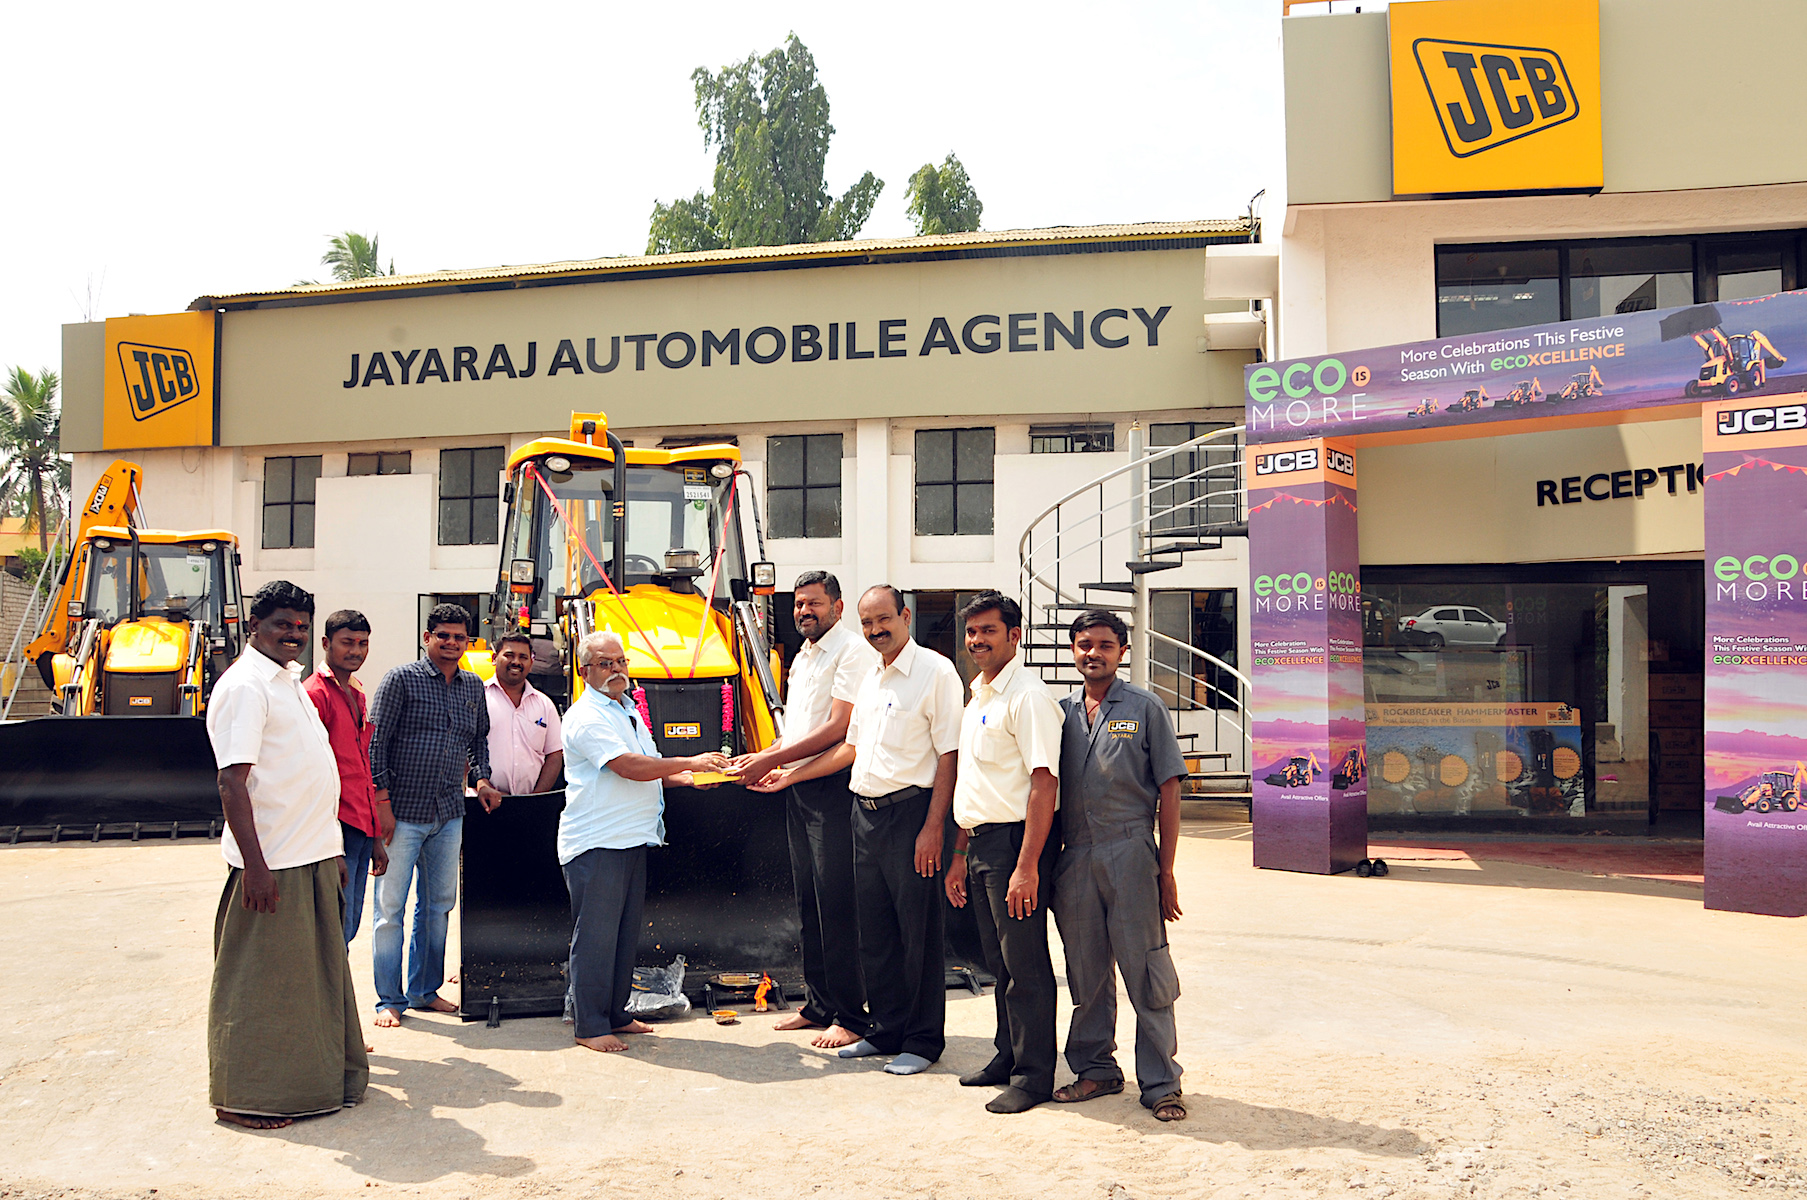 Jayaraj Automobile Agency